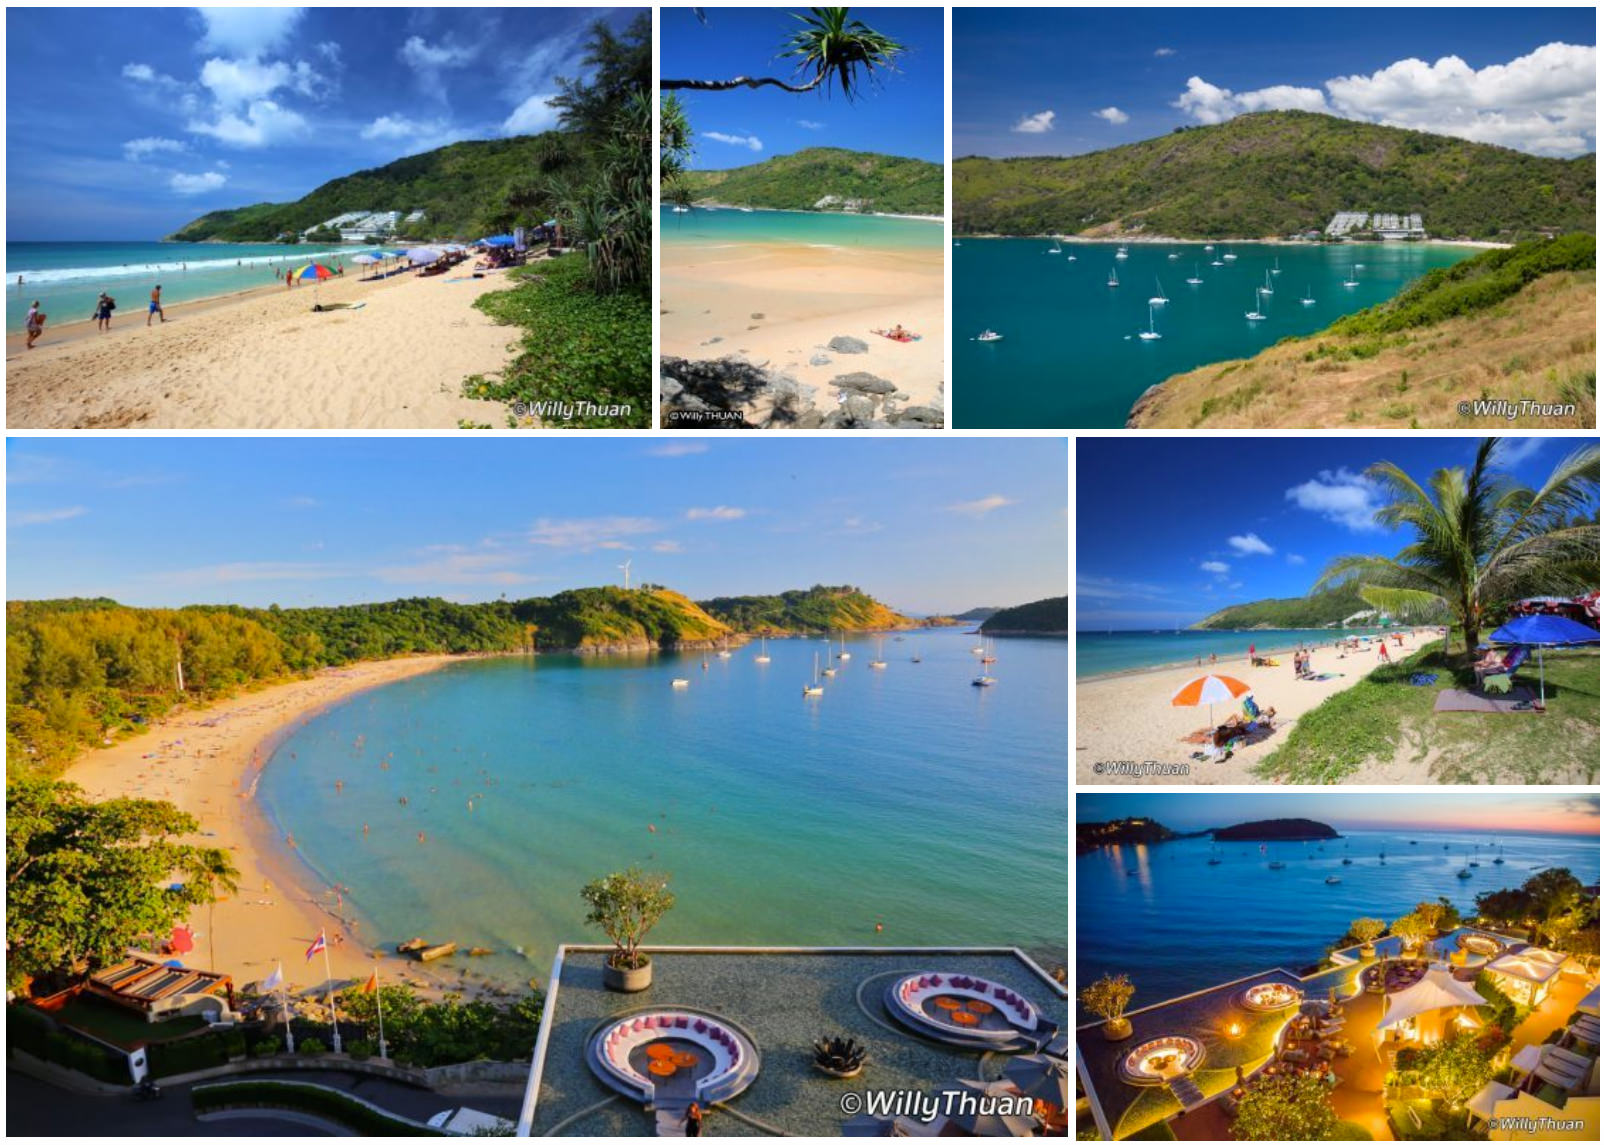 Photos of Nai Harn Beach